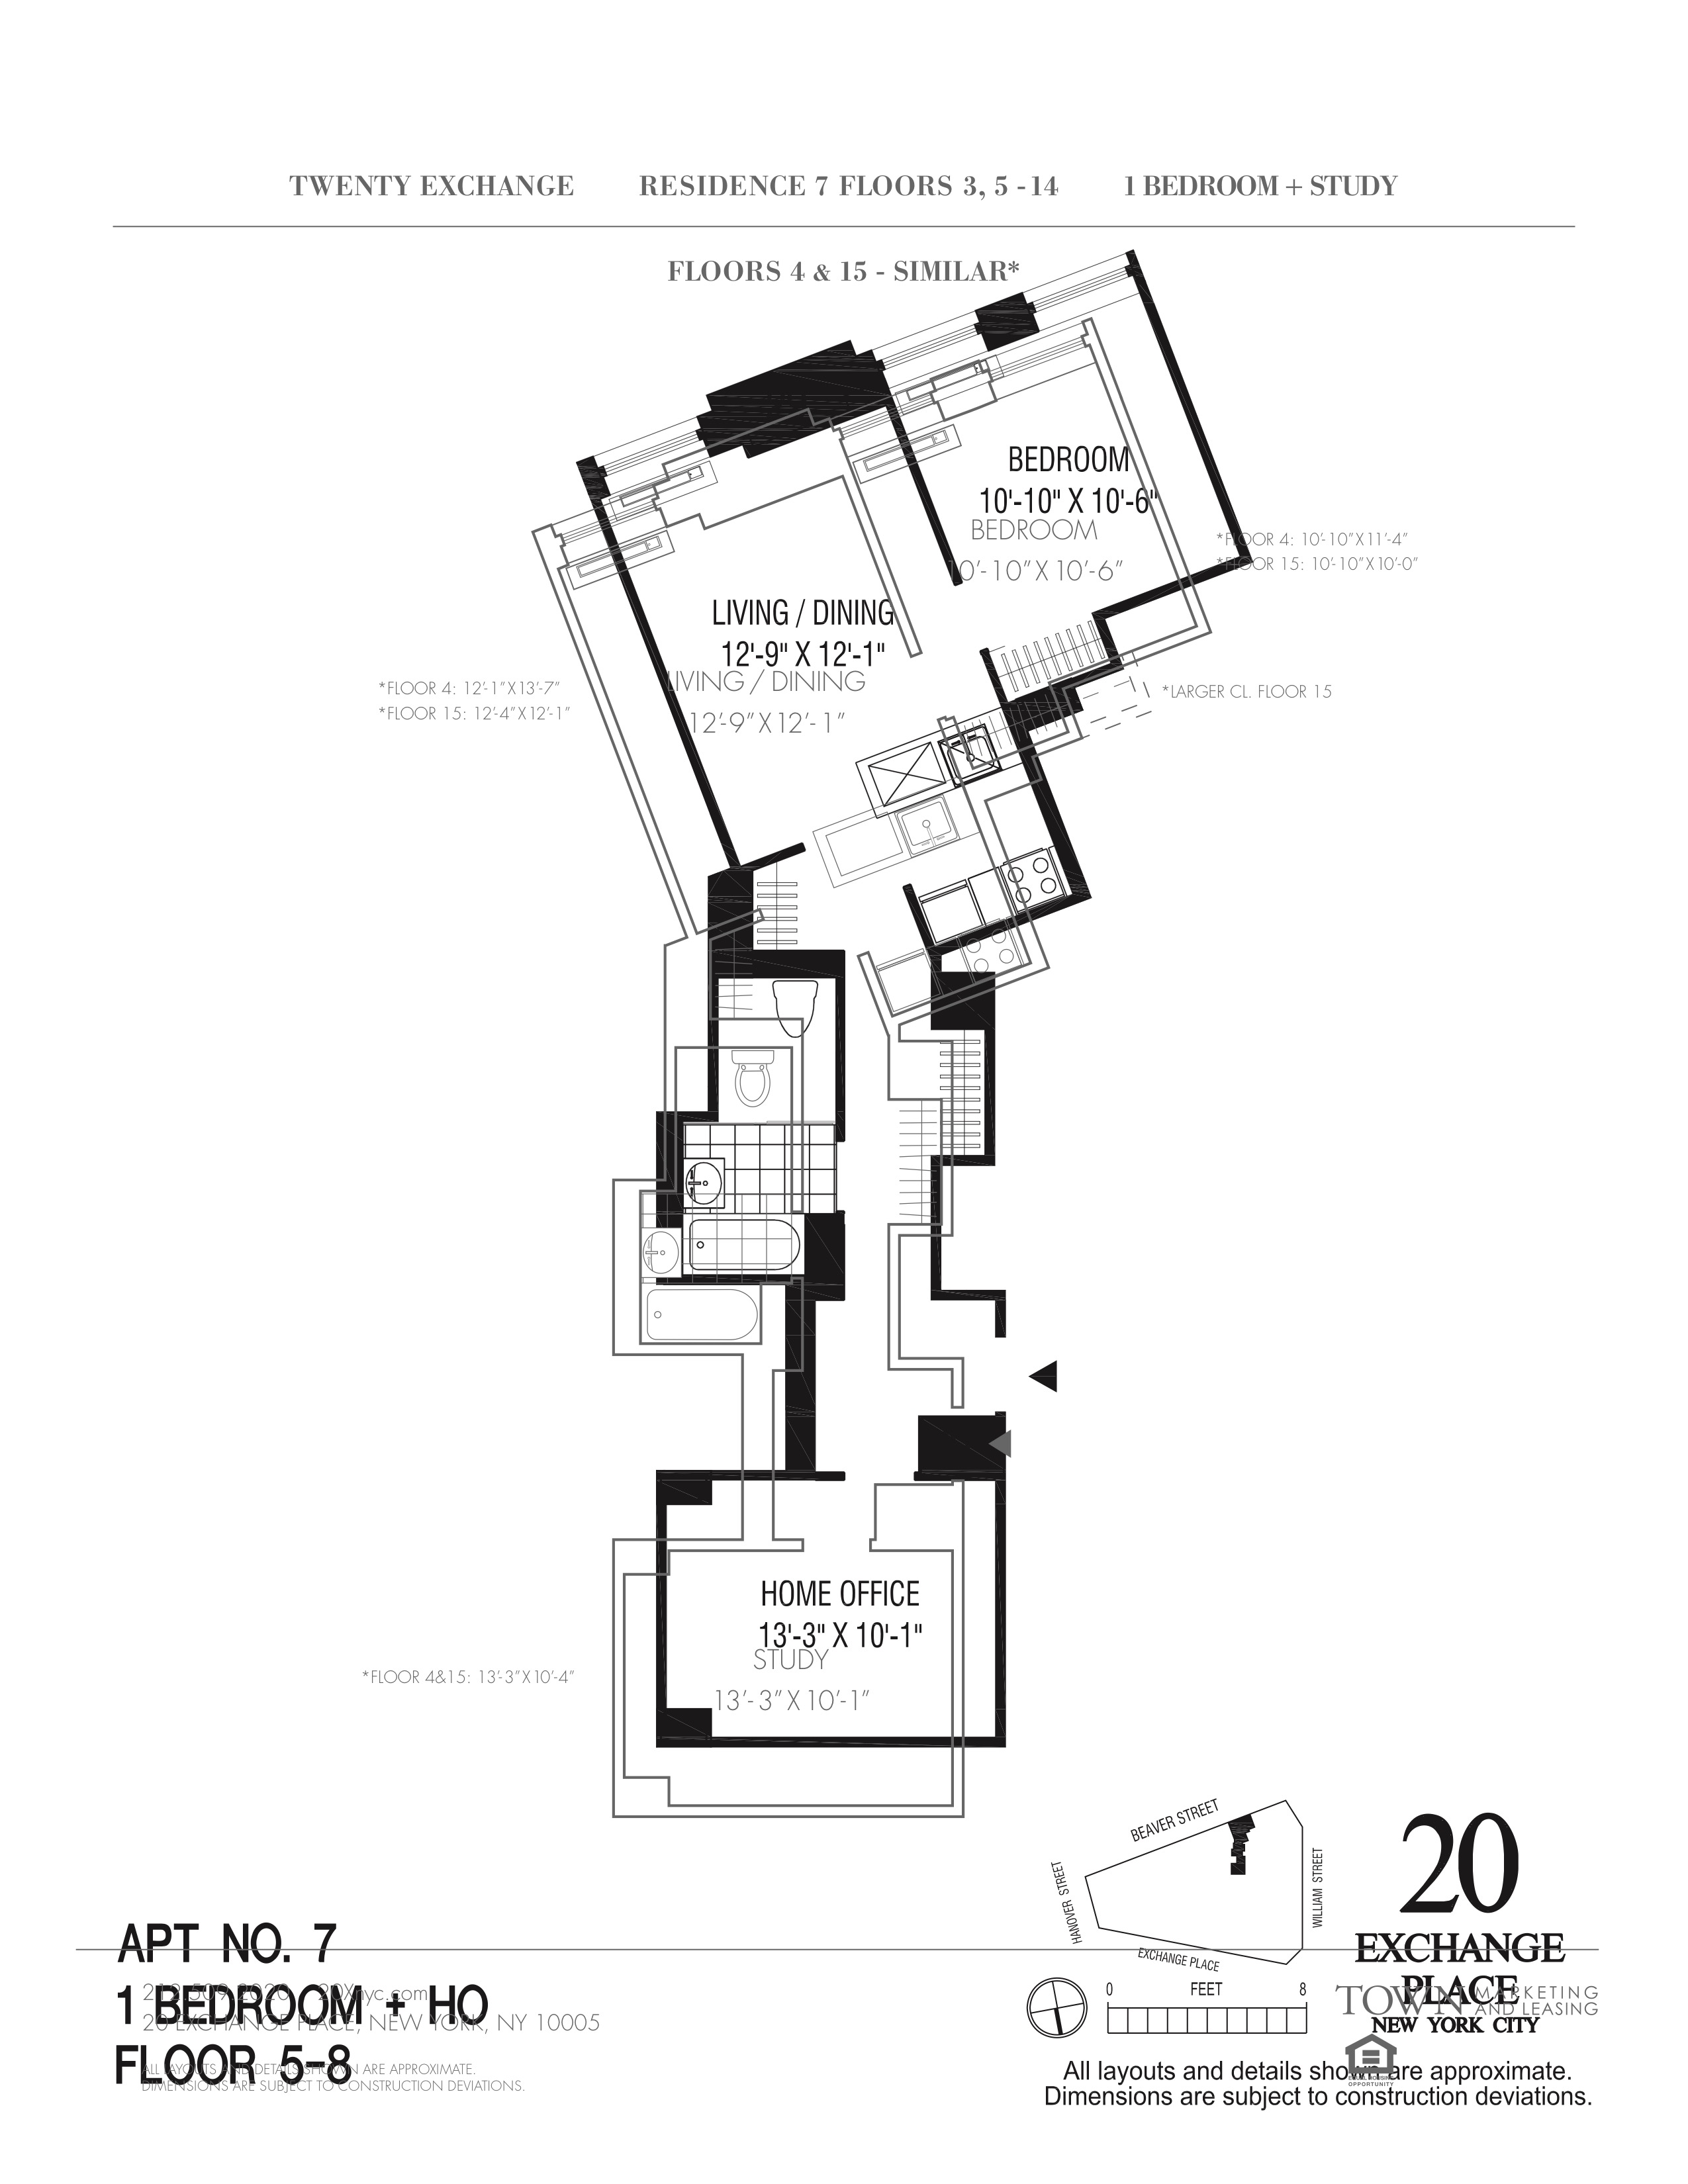 20 exchange place floor plans new york city for 15 dunham place floor plans